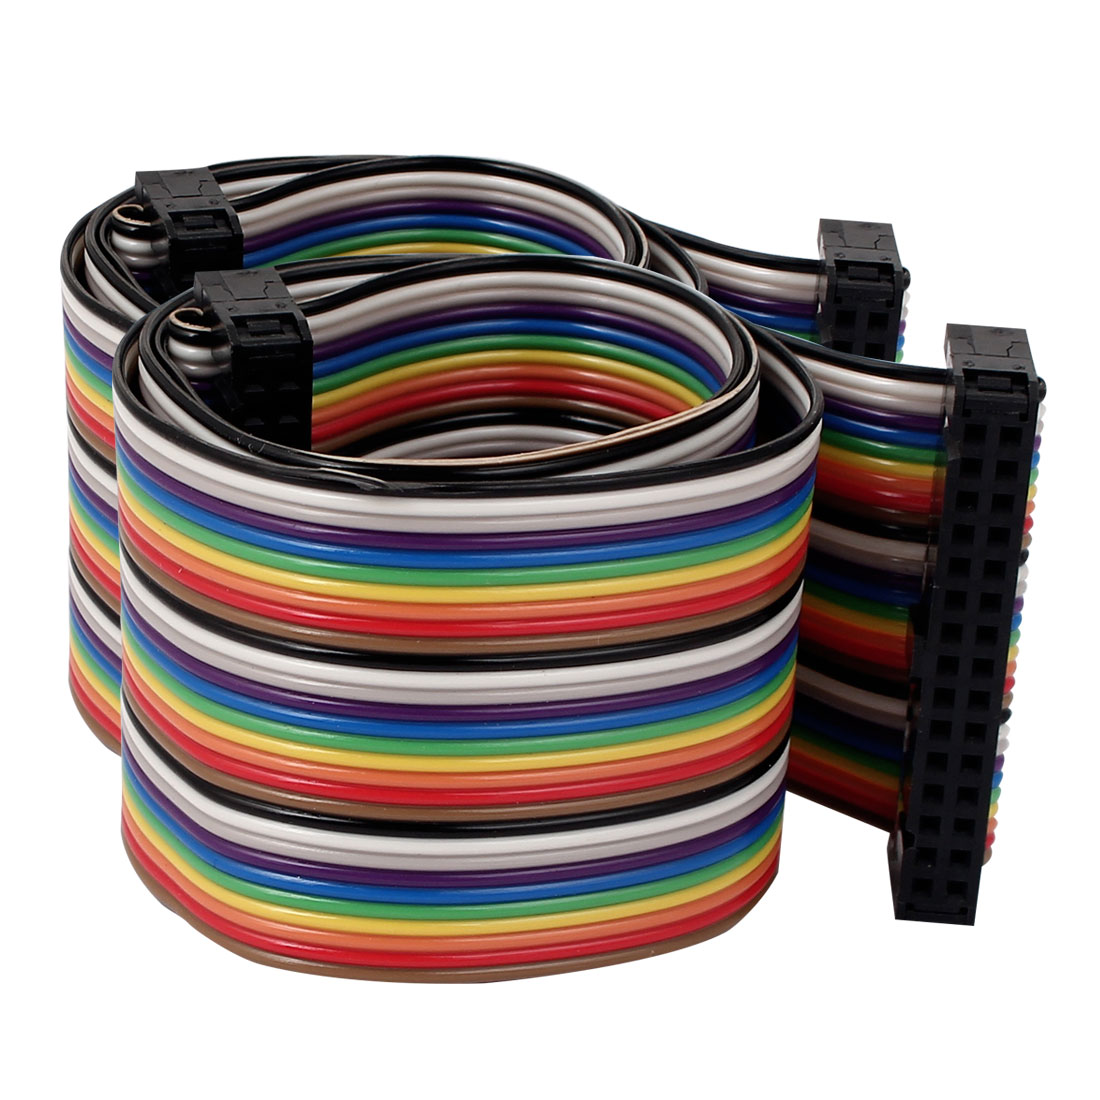 50cm 30 Pin 30 Way F/F Connector IDC Flat Rainbow Color Ribbon Cable 2pcs